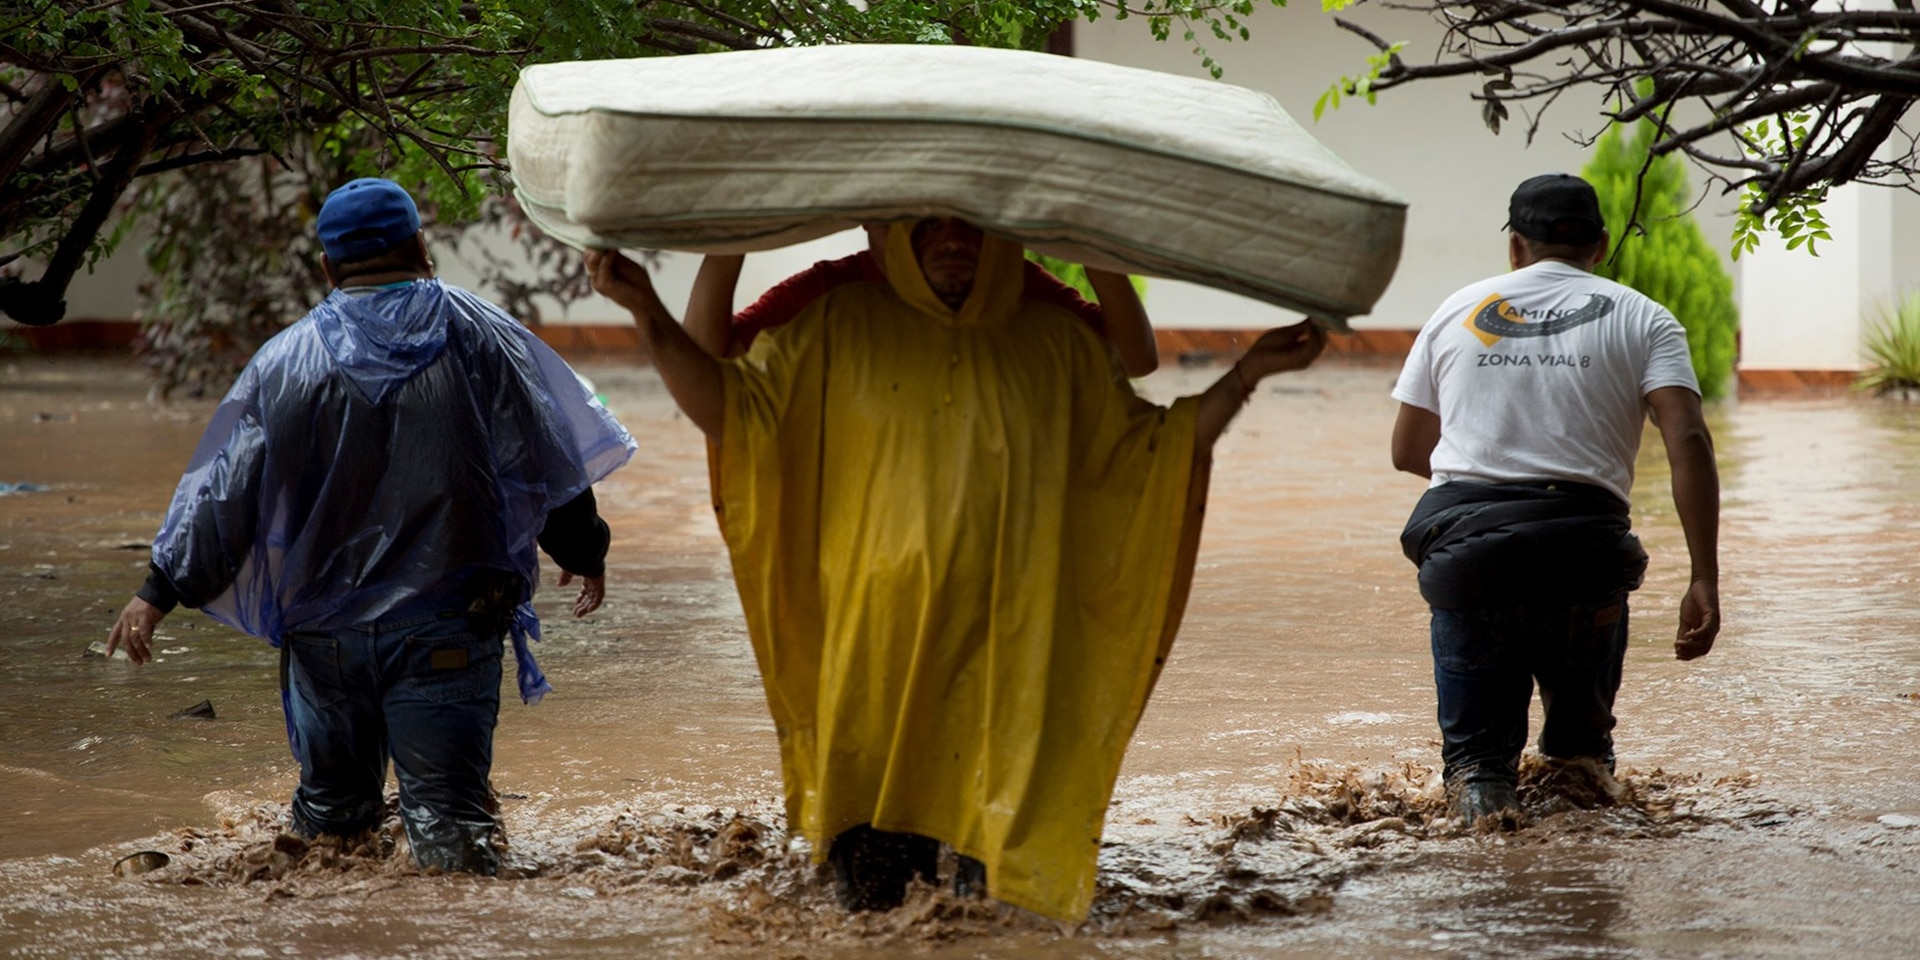 Two people carrying a mattress through the floods, accompanied by two aid workers.